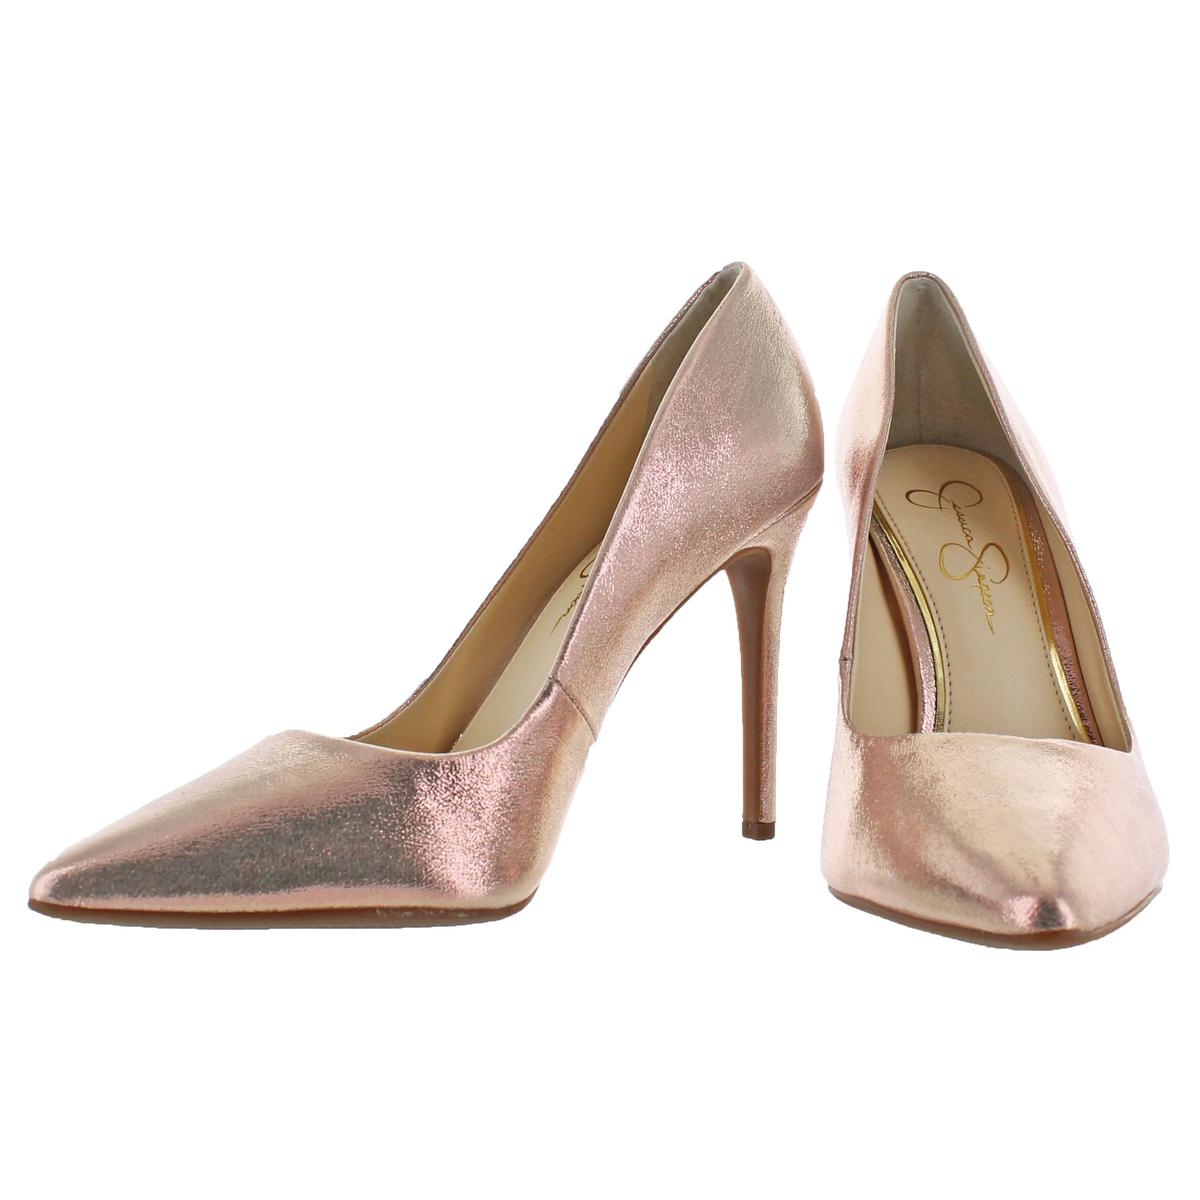 1a5f335668 Jessica Simpson Praylee Women's Pointed-Toe Pumps Shoes | eBay